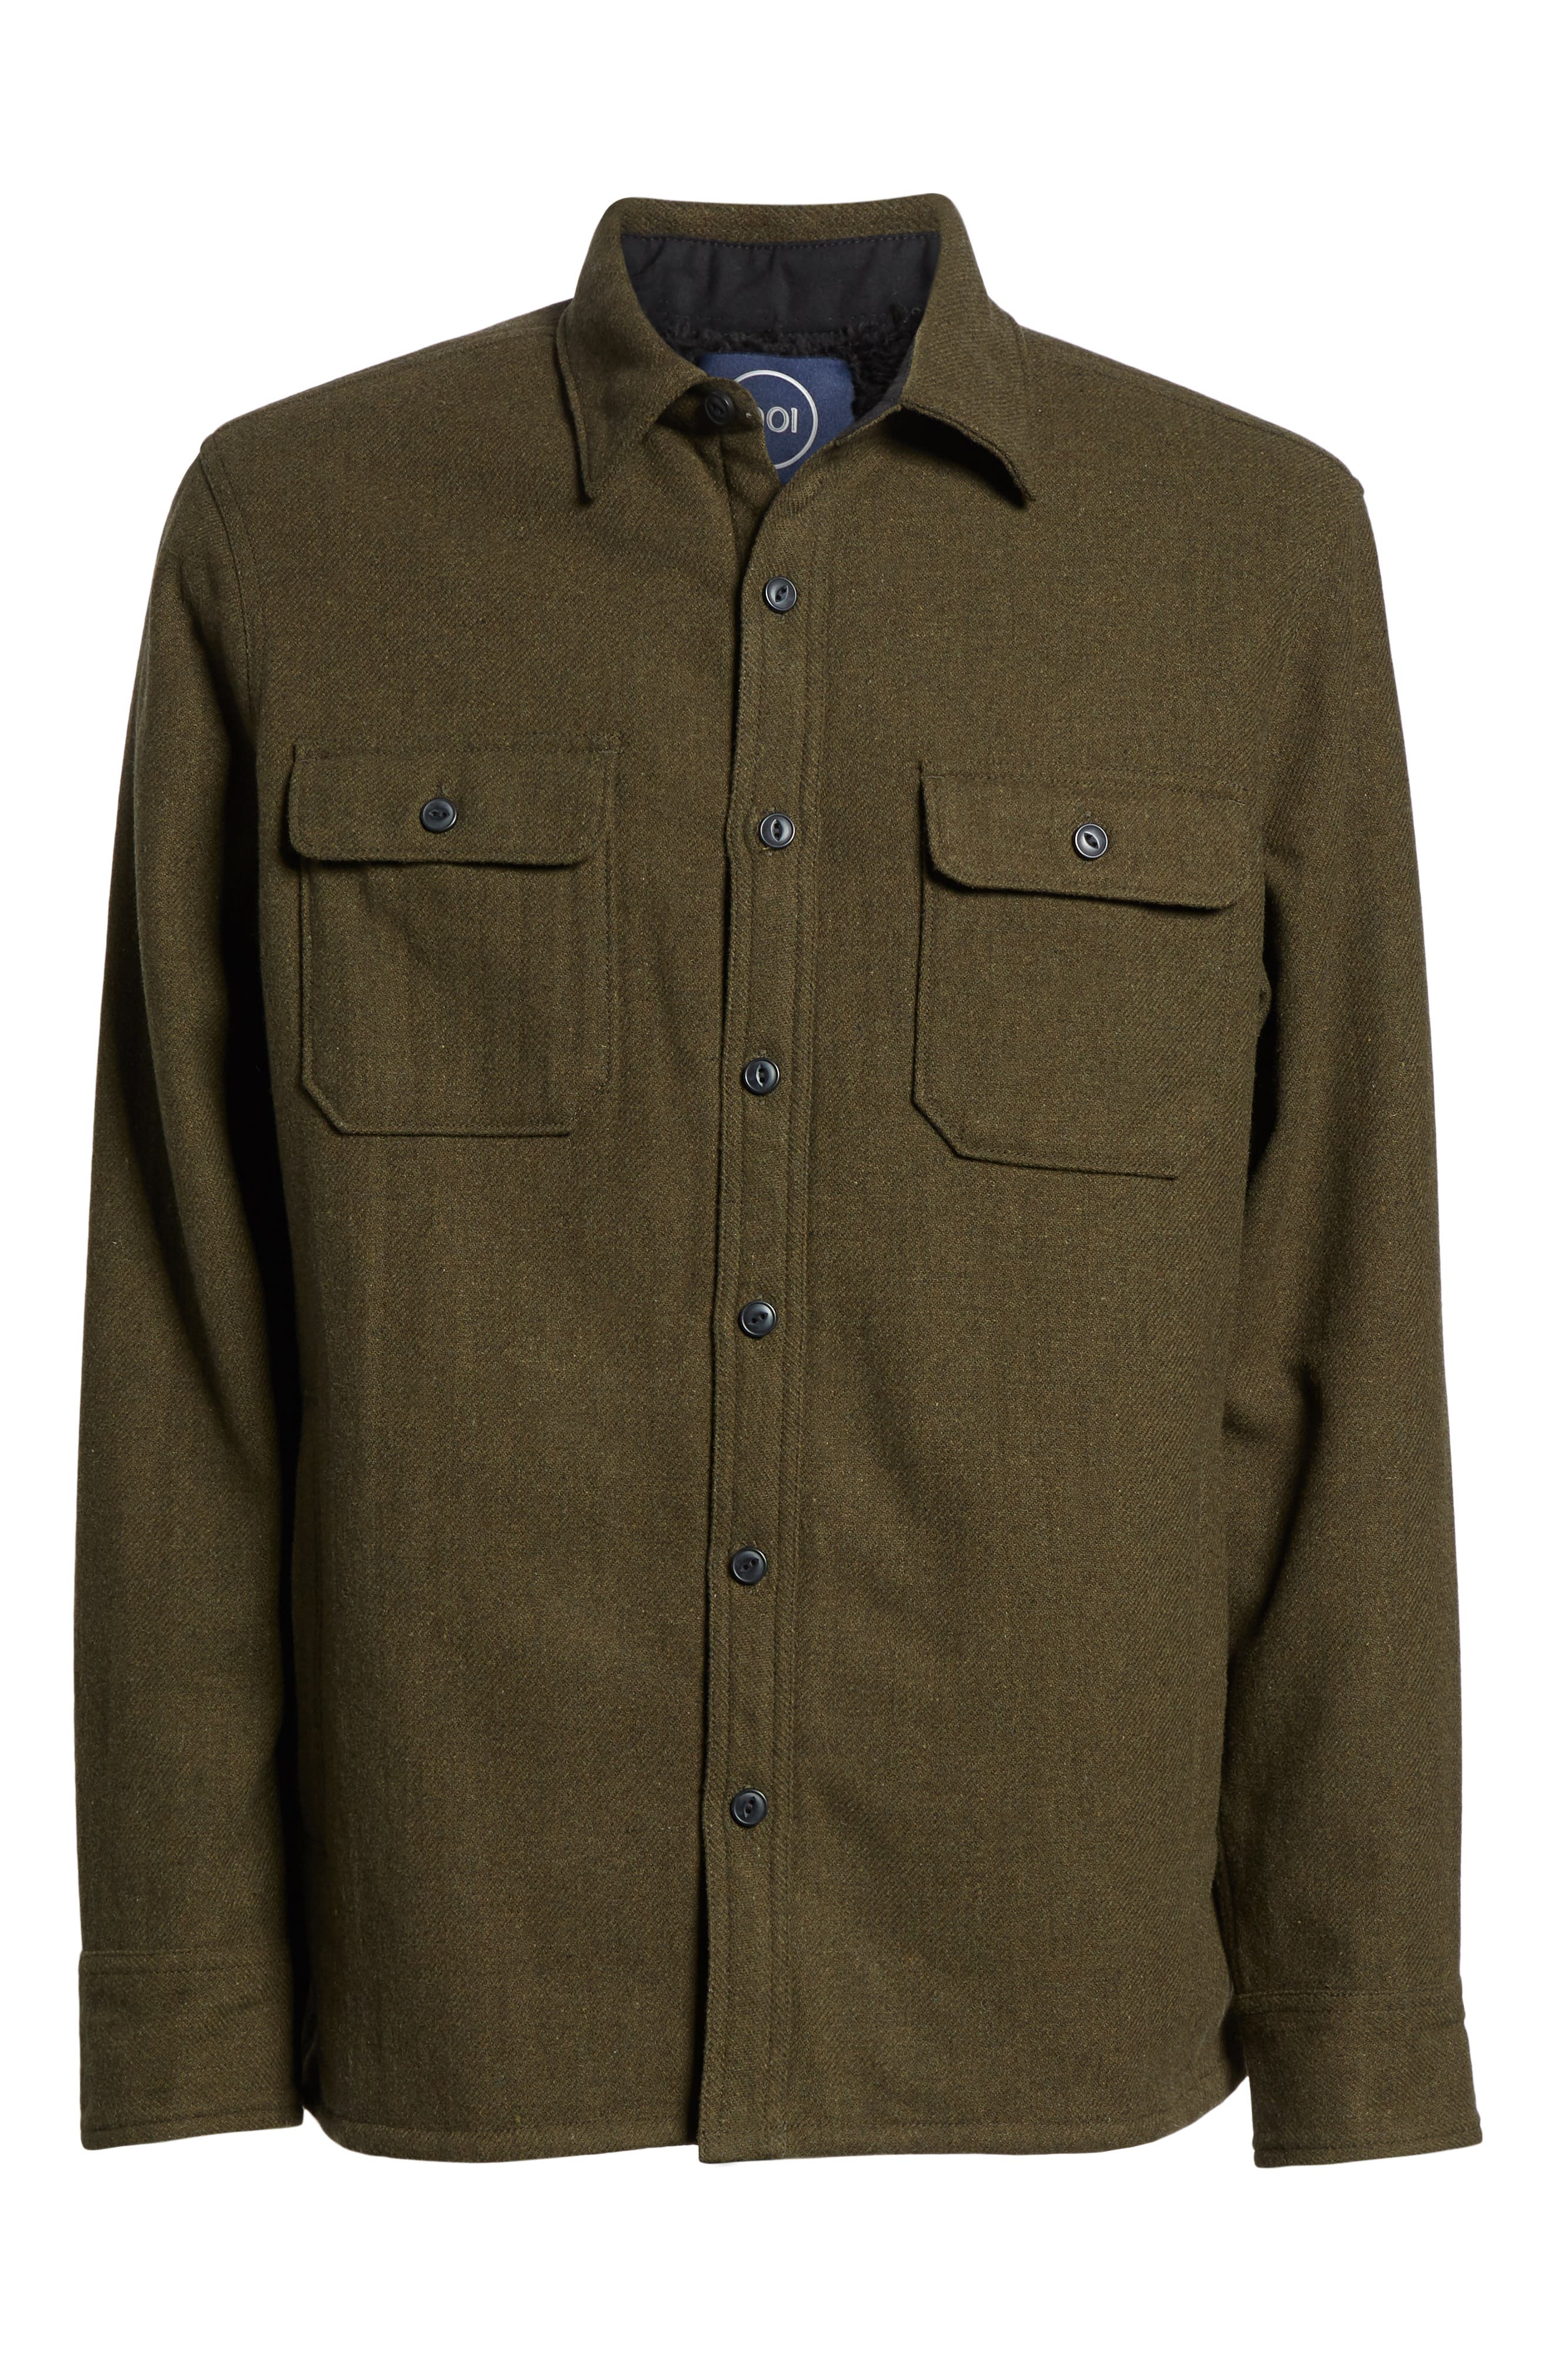 Lined Wool Blend Shirt Jacket,                             Alternate thumbnail 6, color,                             GREEN FOREST HEATHER